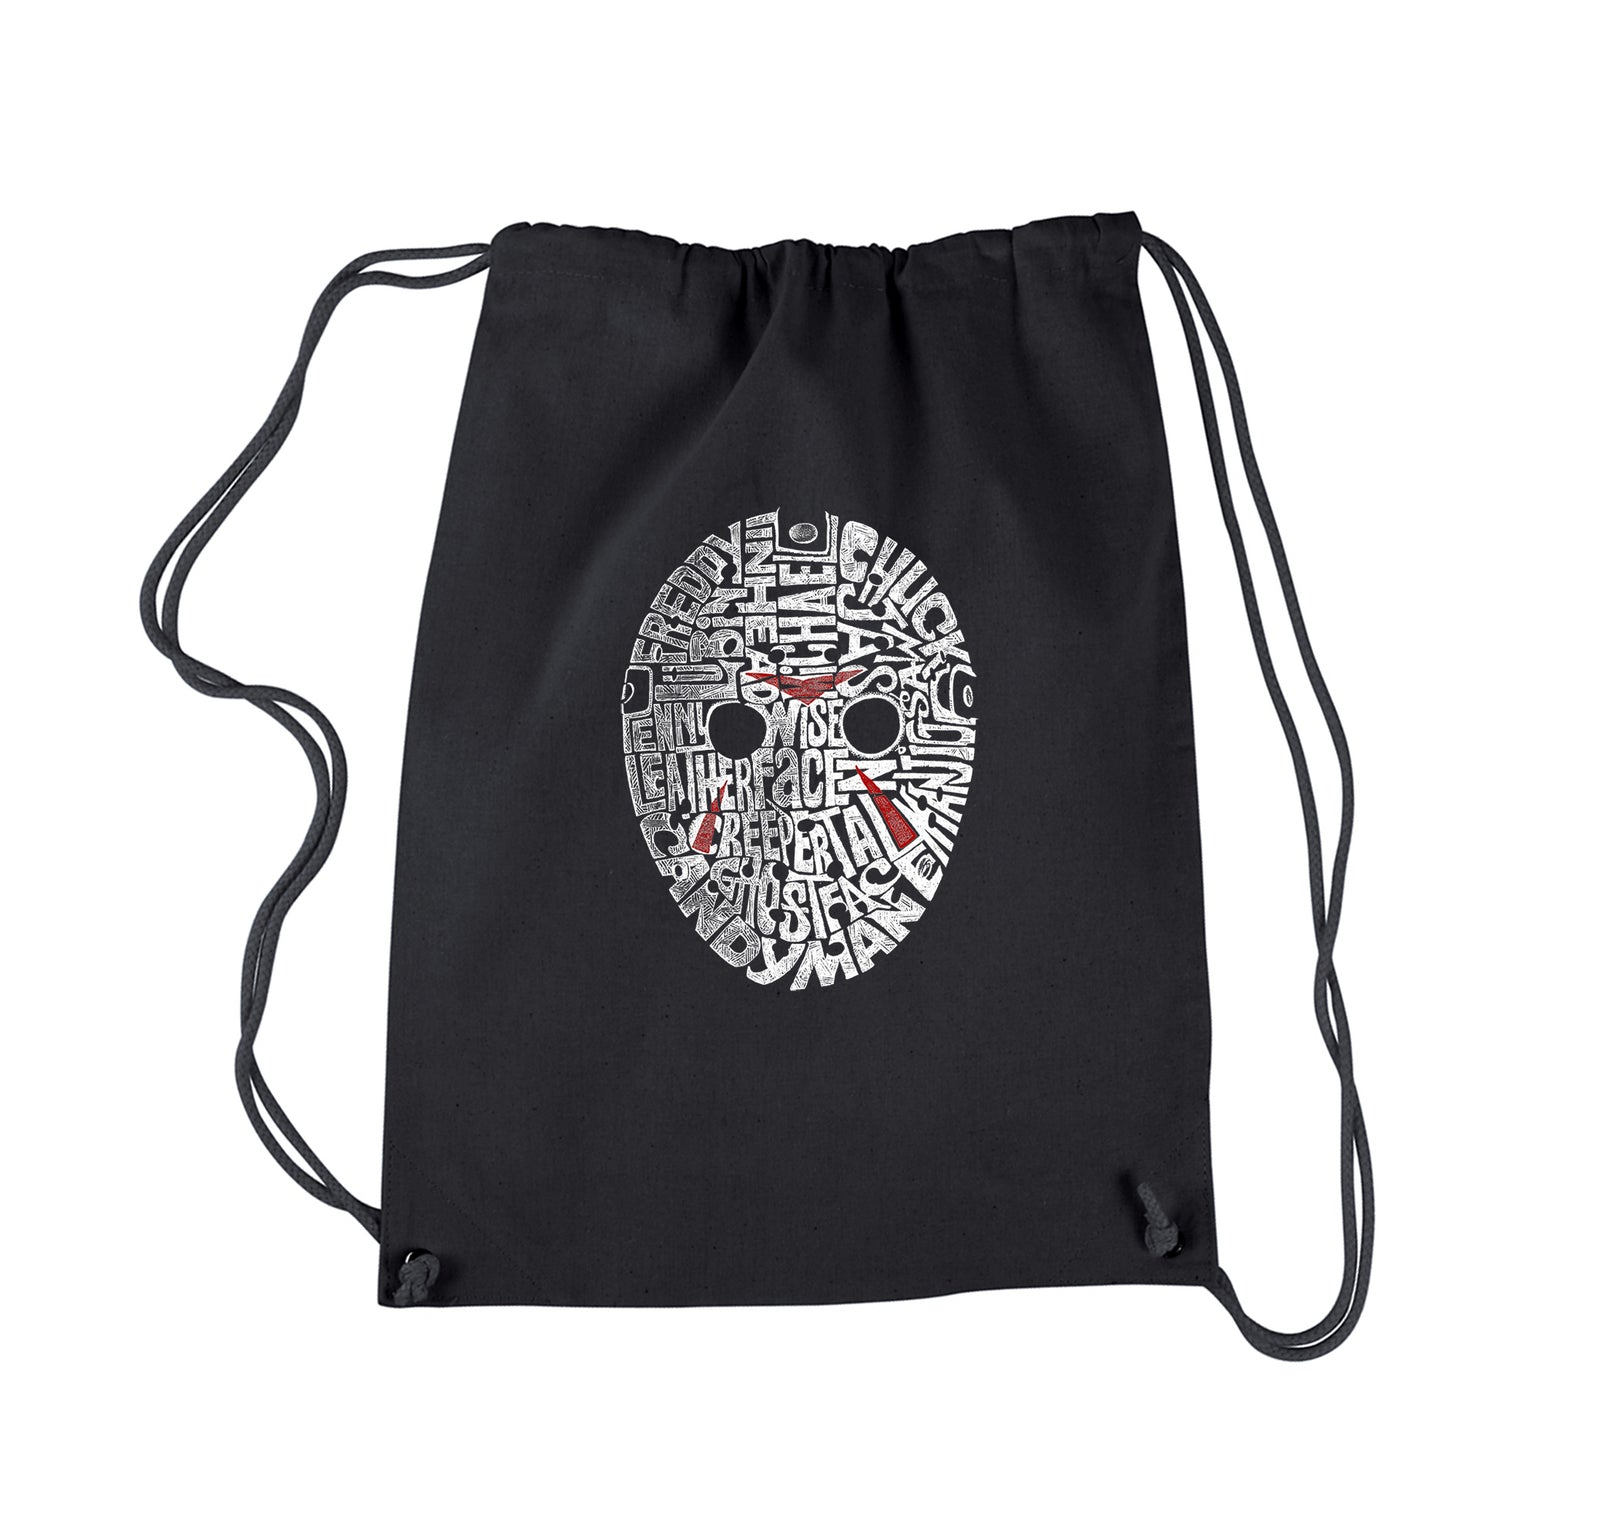 Drawstring Backpack - Slasher Movie Villians